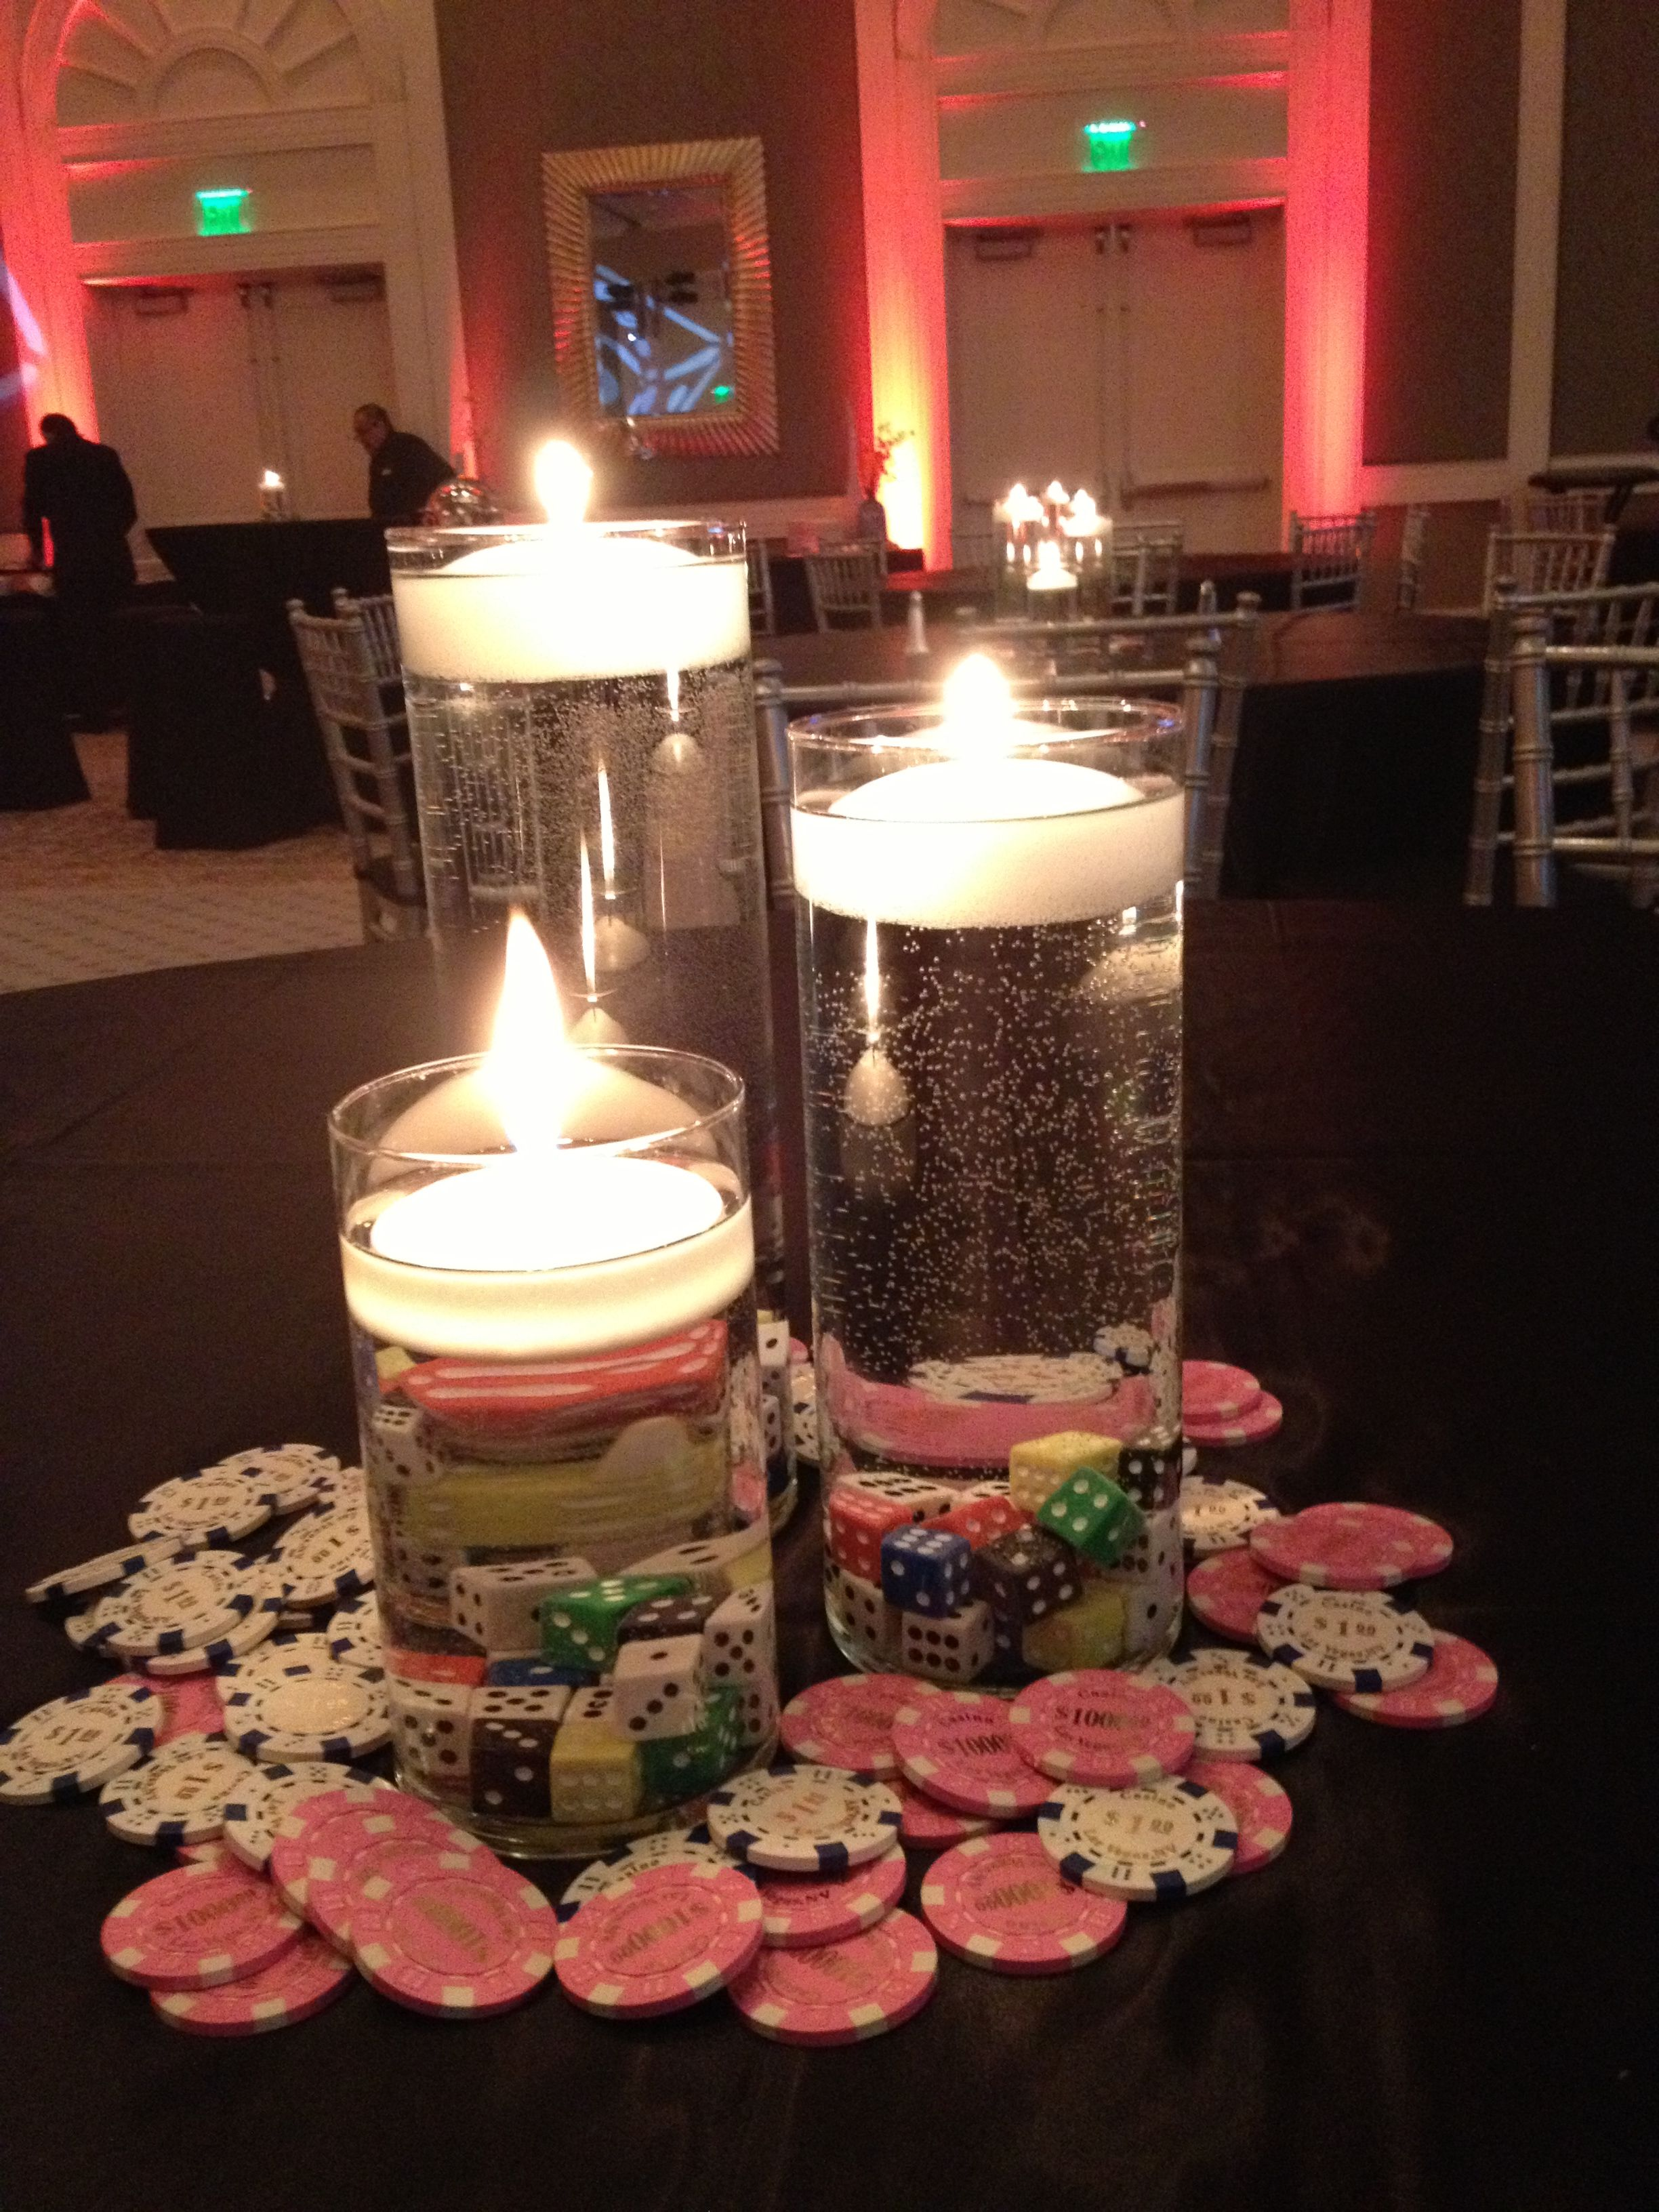 Casino night centerpieces ideas omega 007 watch casino royale price